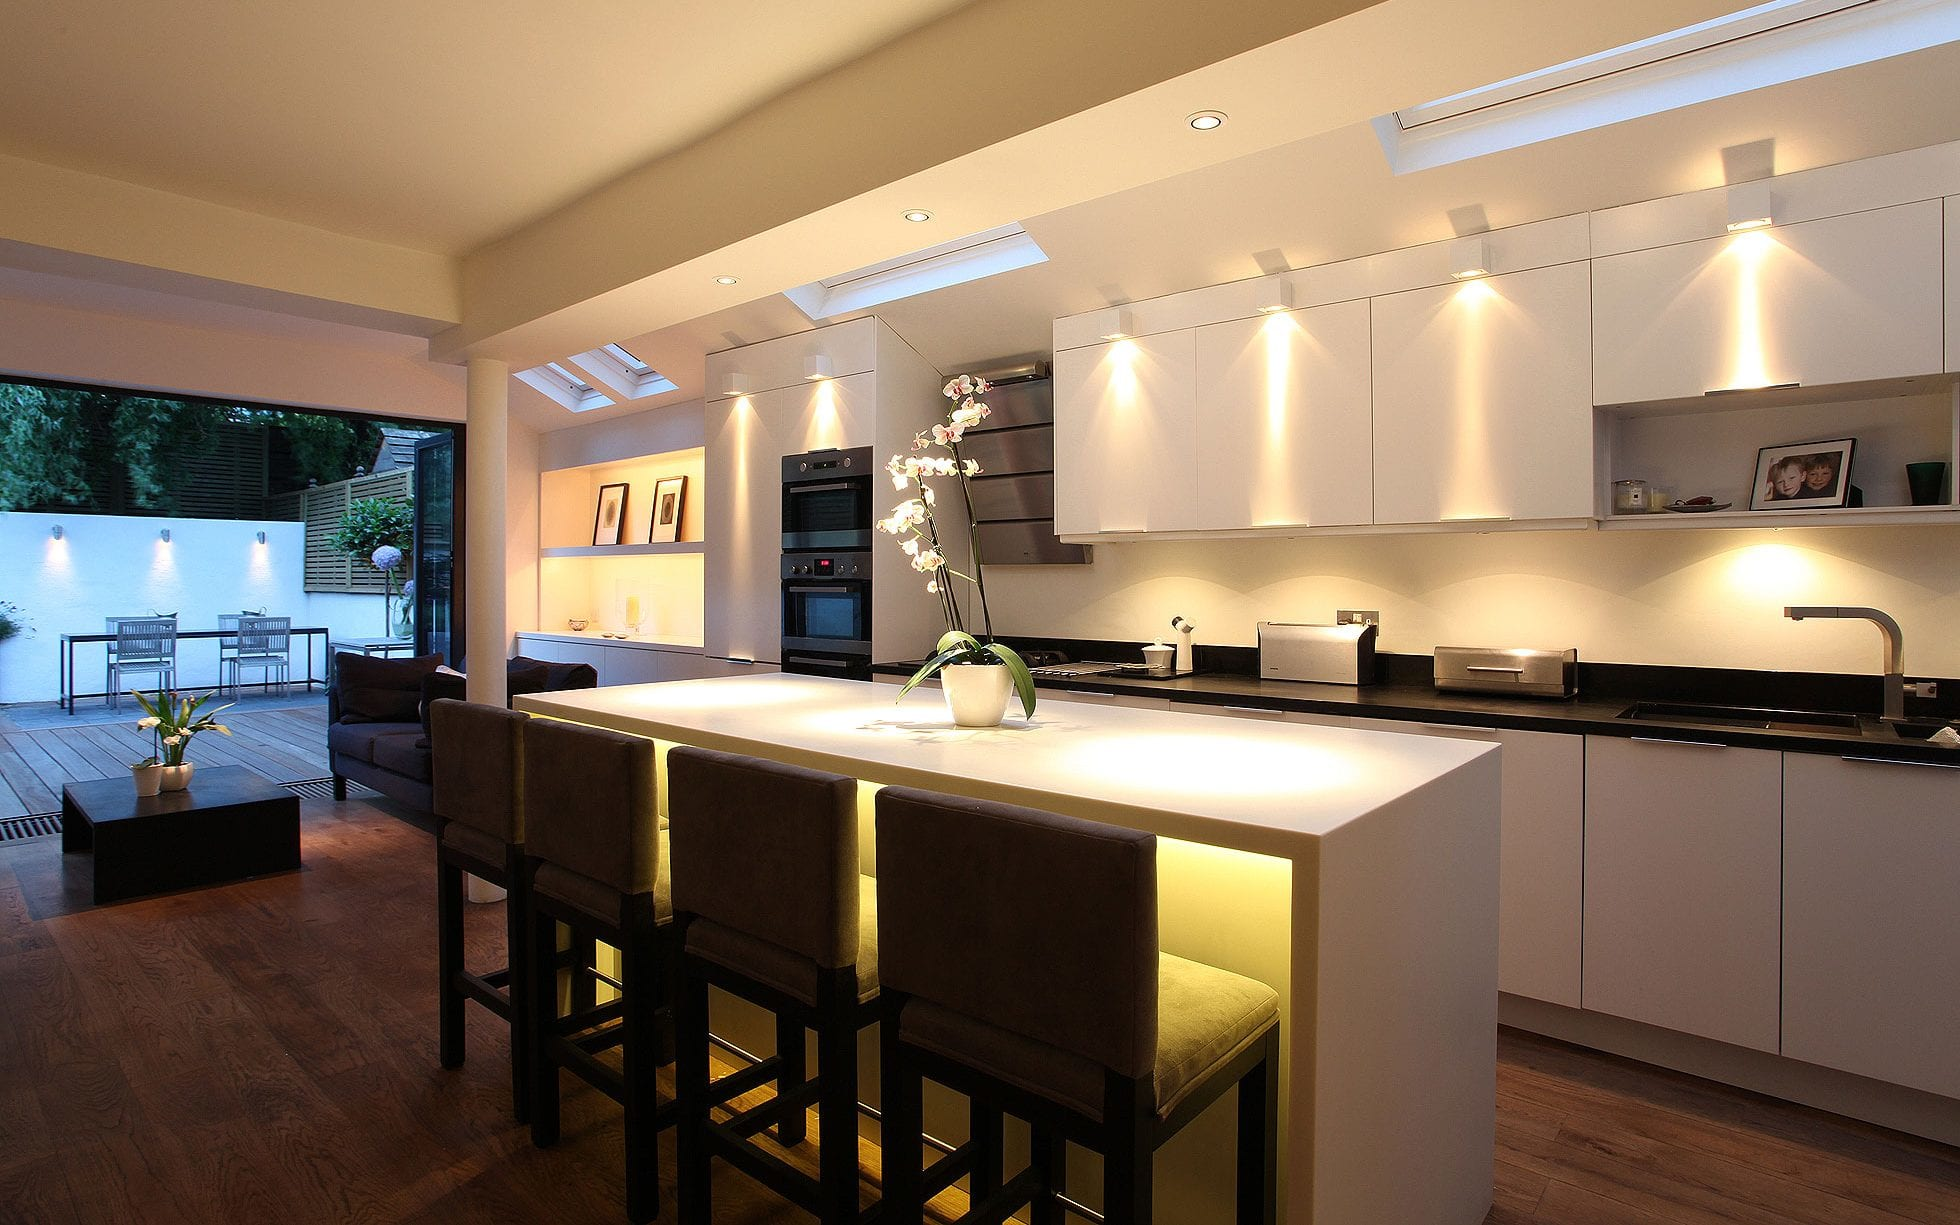 Classic Kitchen Lighting Kitchen Lighting Design For Modern And Classic Themes